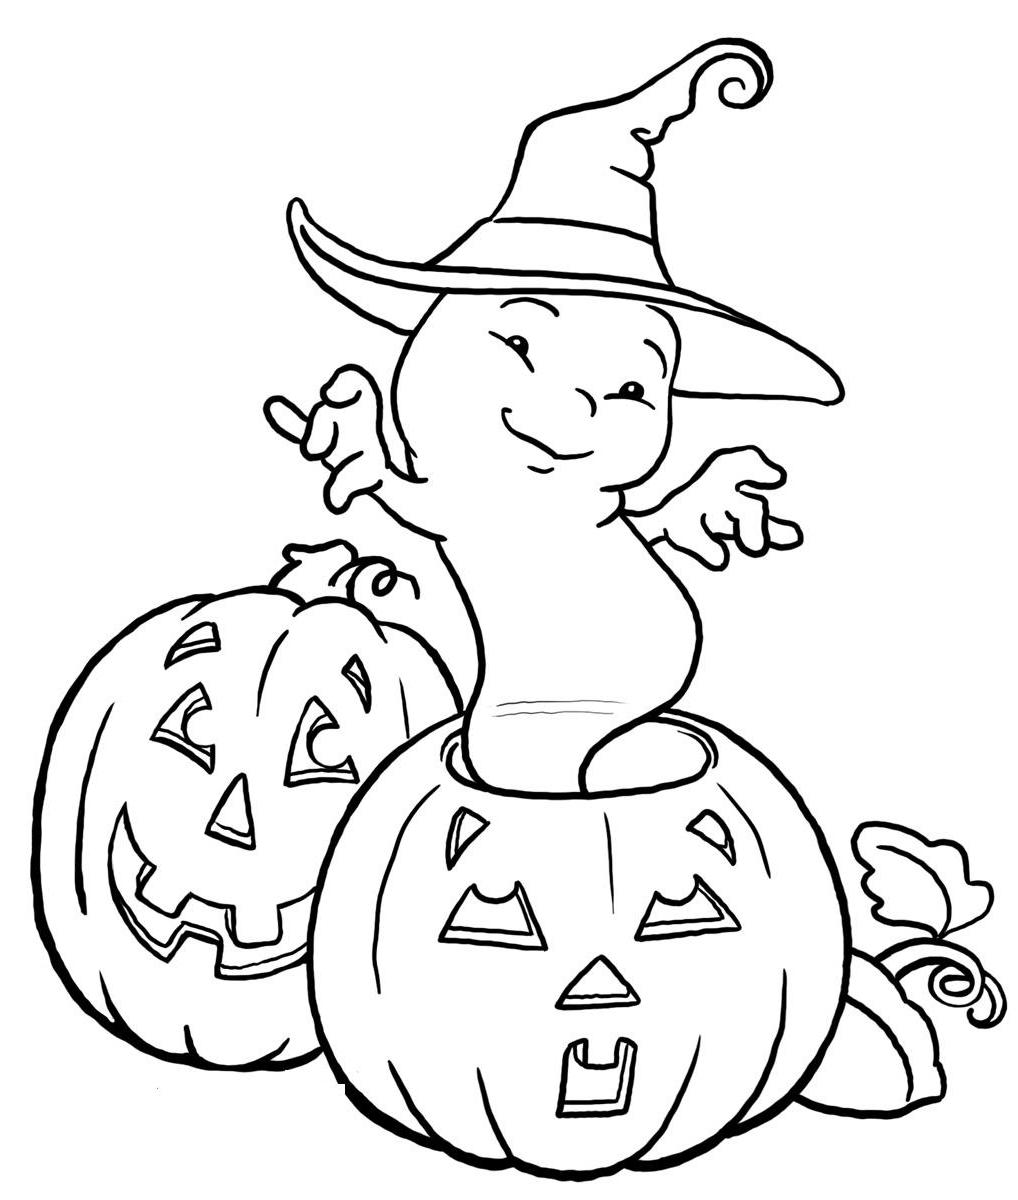 coloring pages ghost ghost face coloring pages at getdrawings free download coloring ghost pages